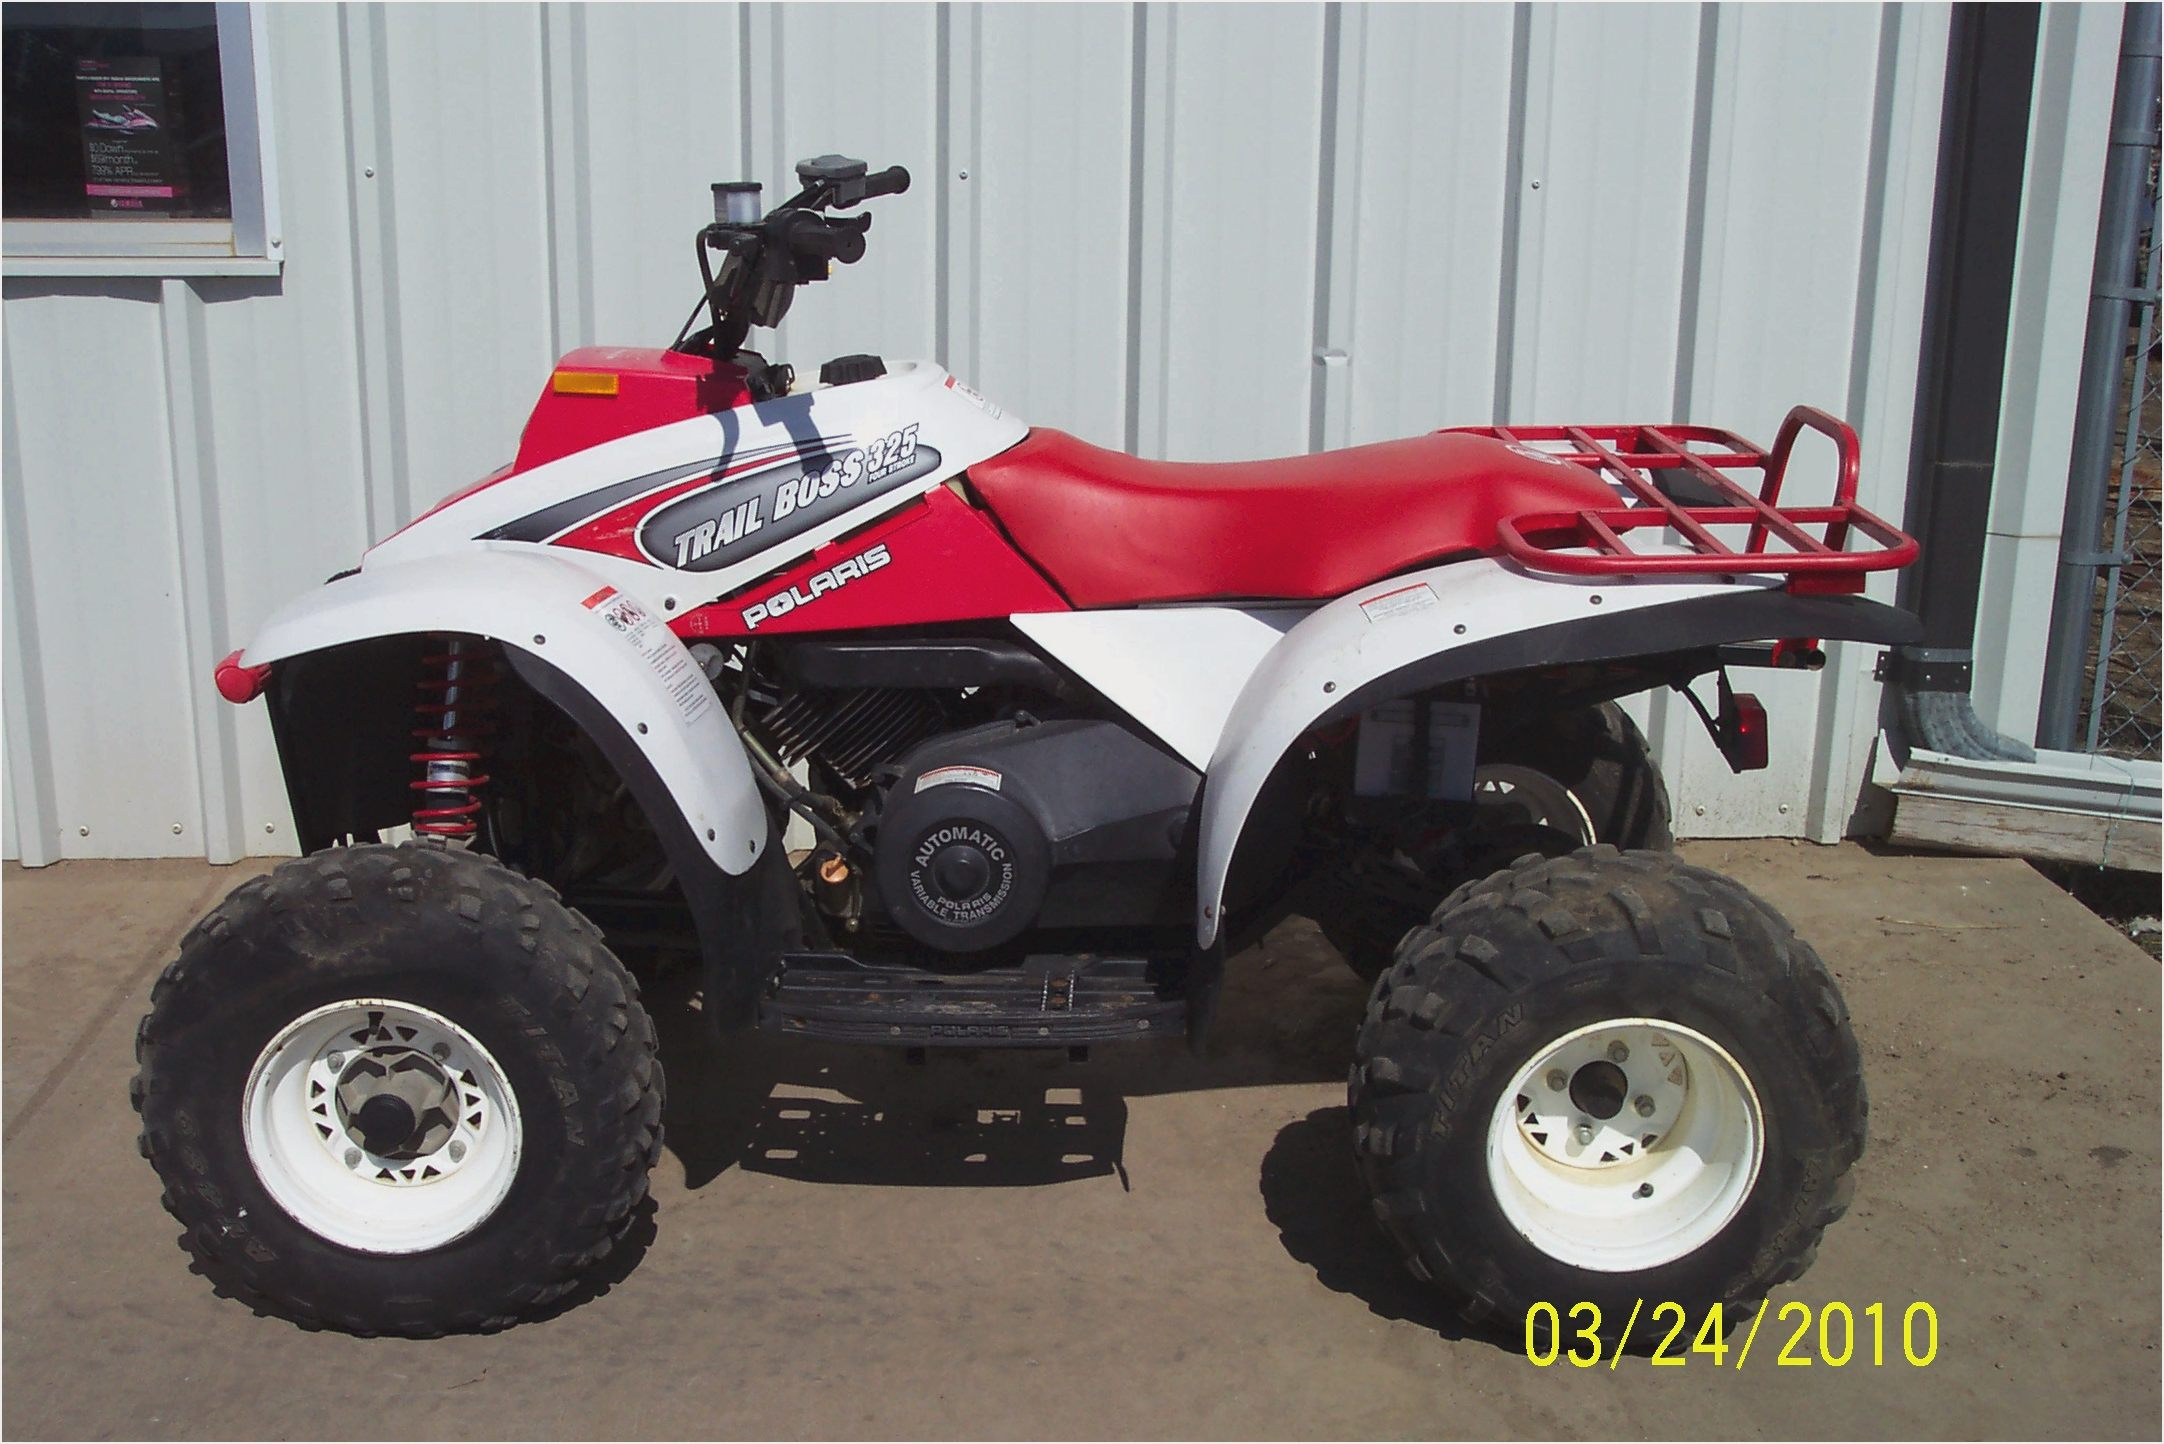 Polaris Trail Boss 325 2001 images #121404